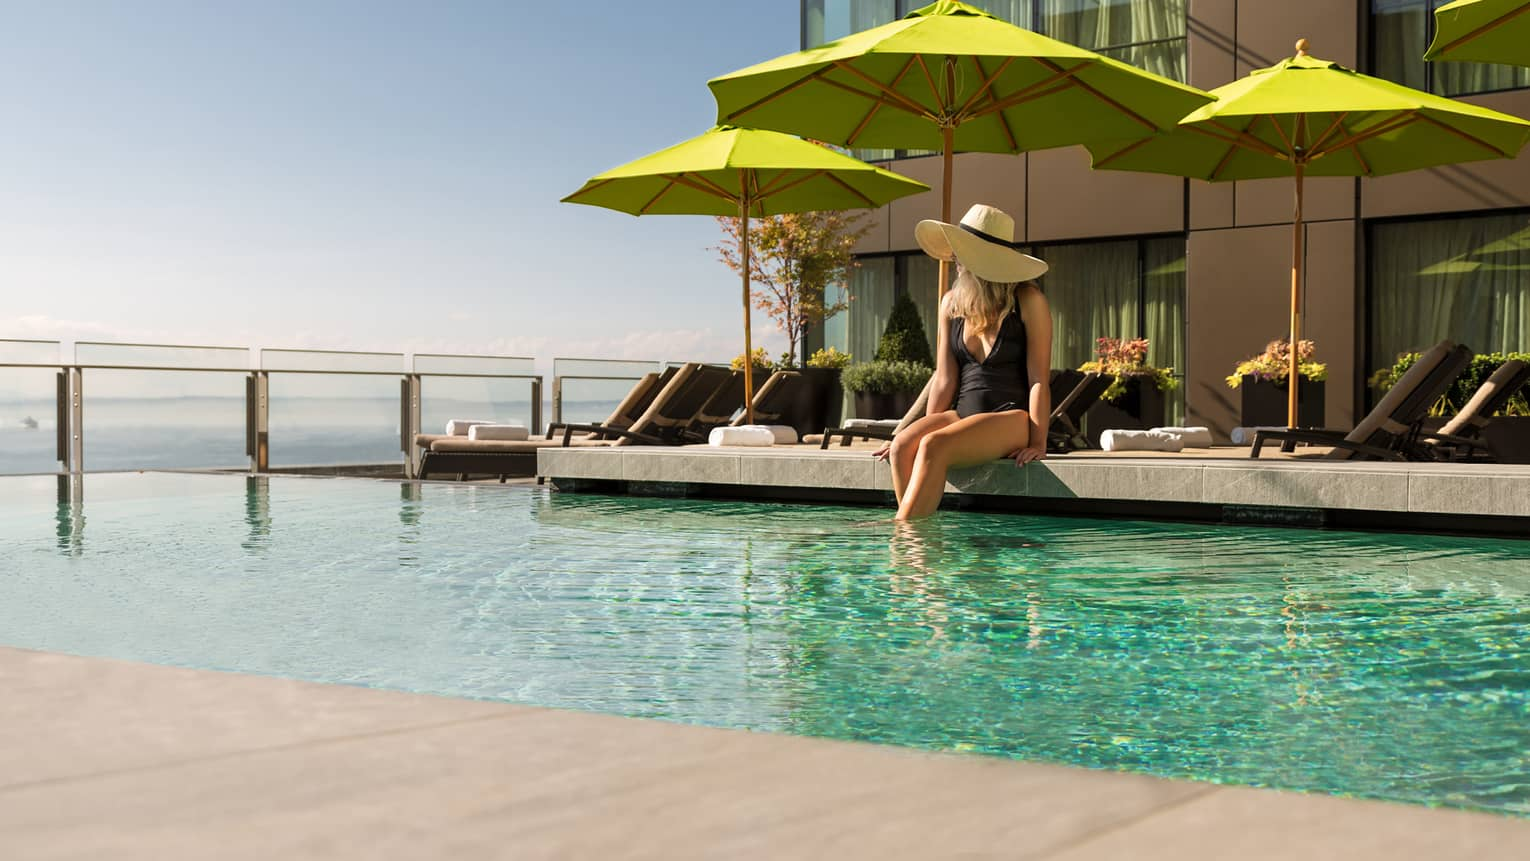 Woman in black swimsuit, sunhat sits on ledge of pool in front of green patio umbrella